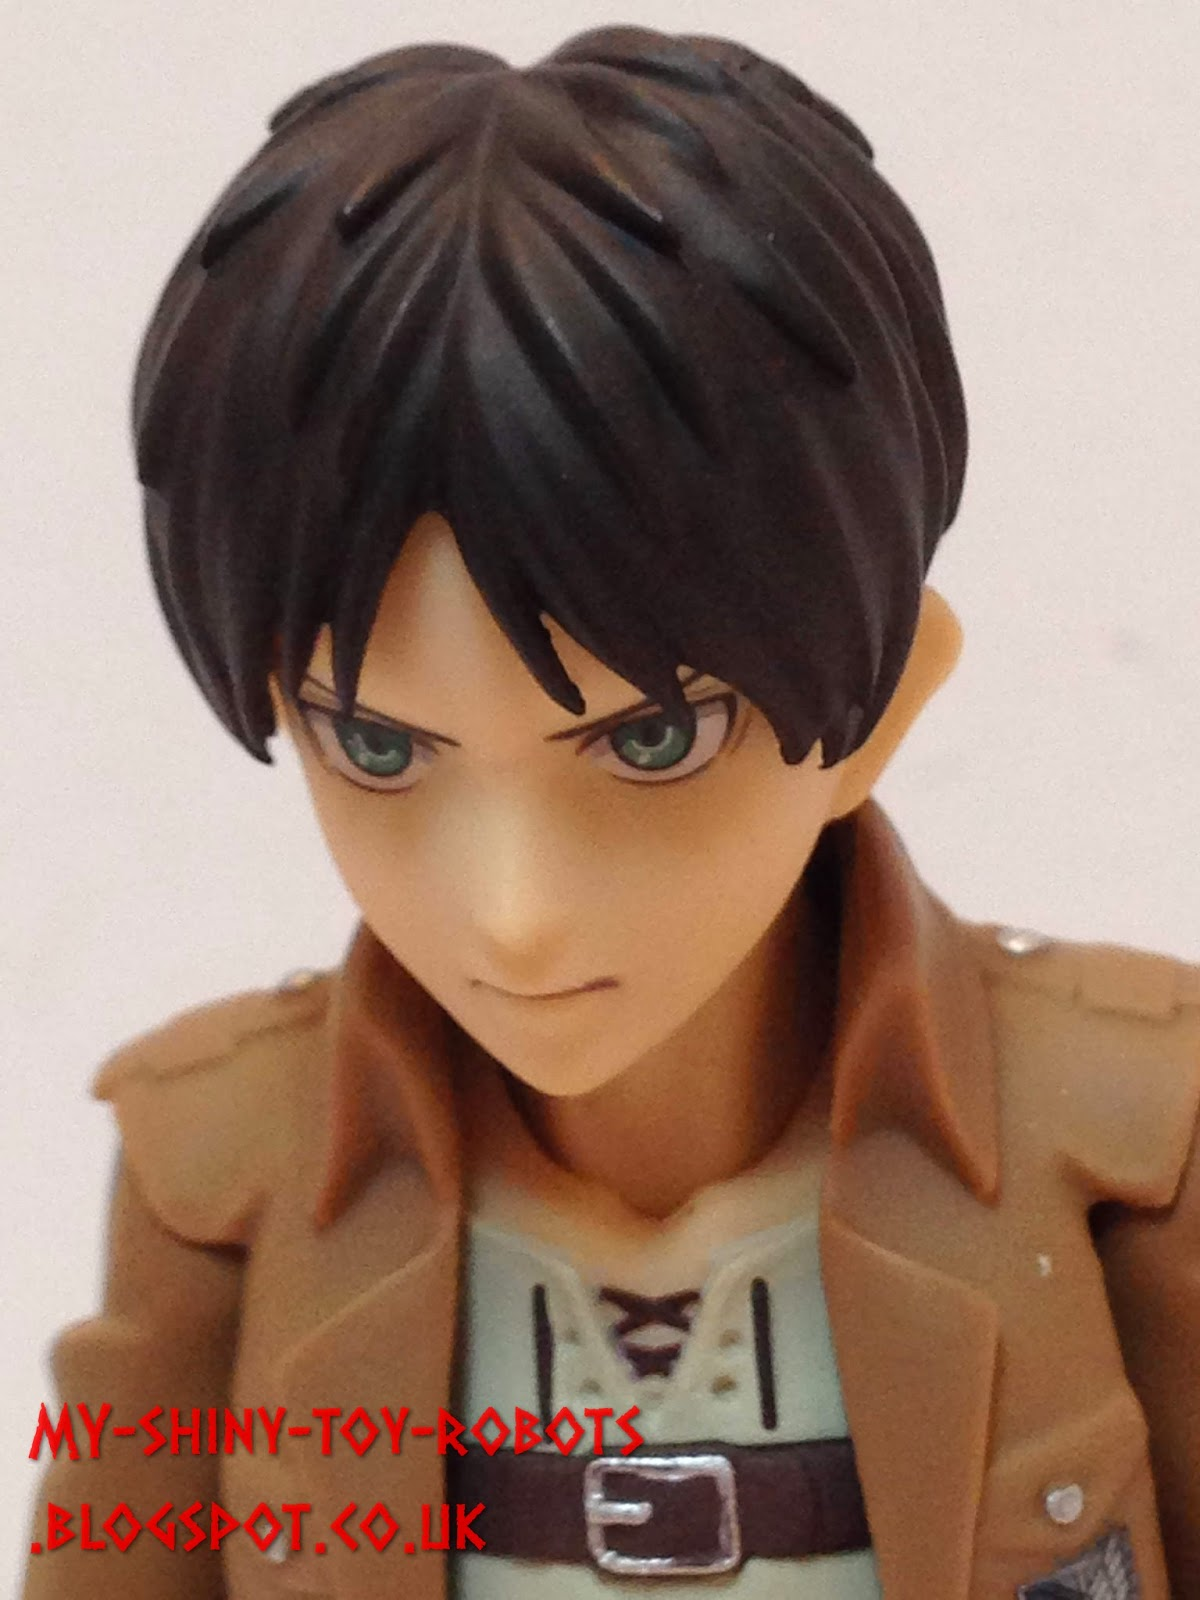 Figma Eren Yeager from Attack on Titan